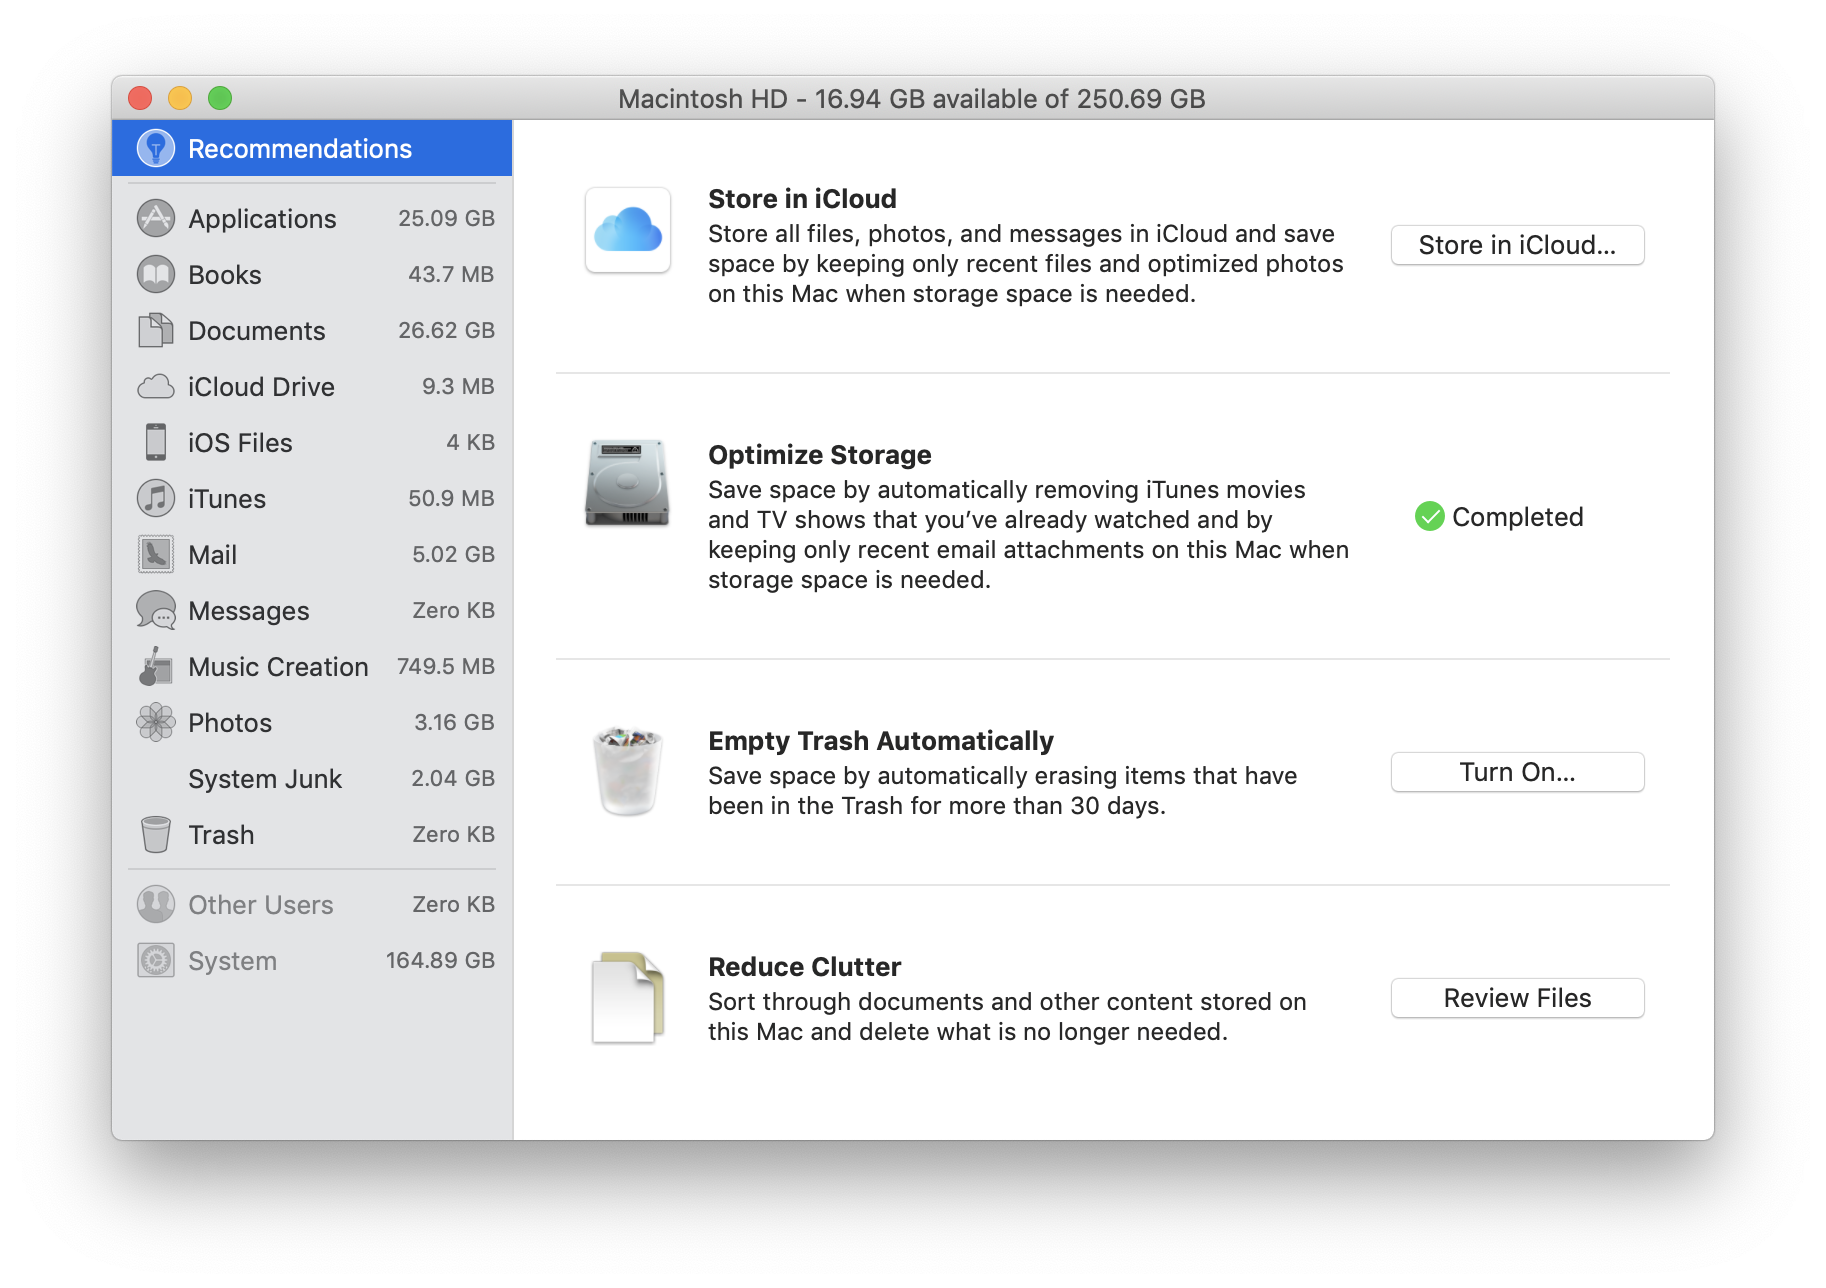 Manage your Mac's Storage space